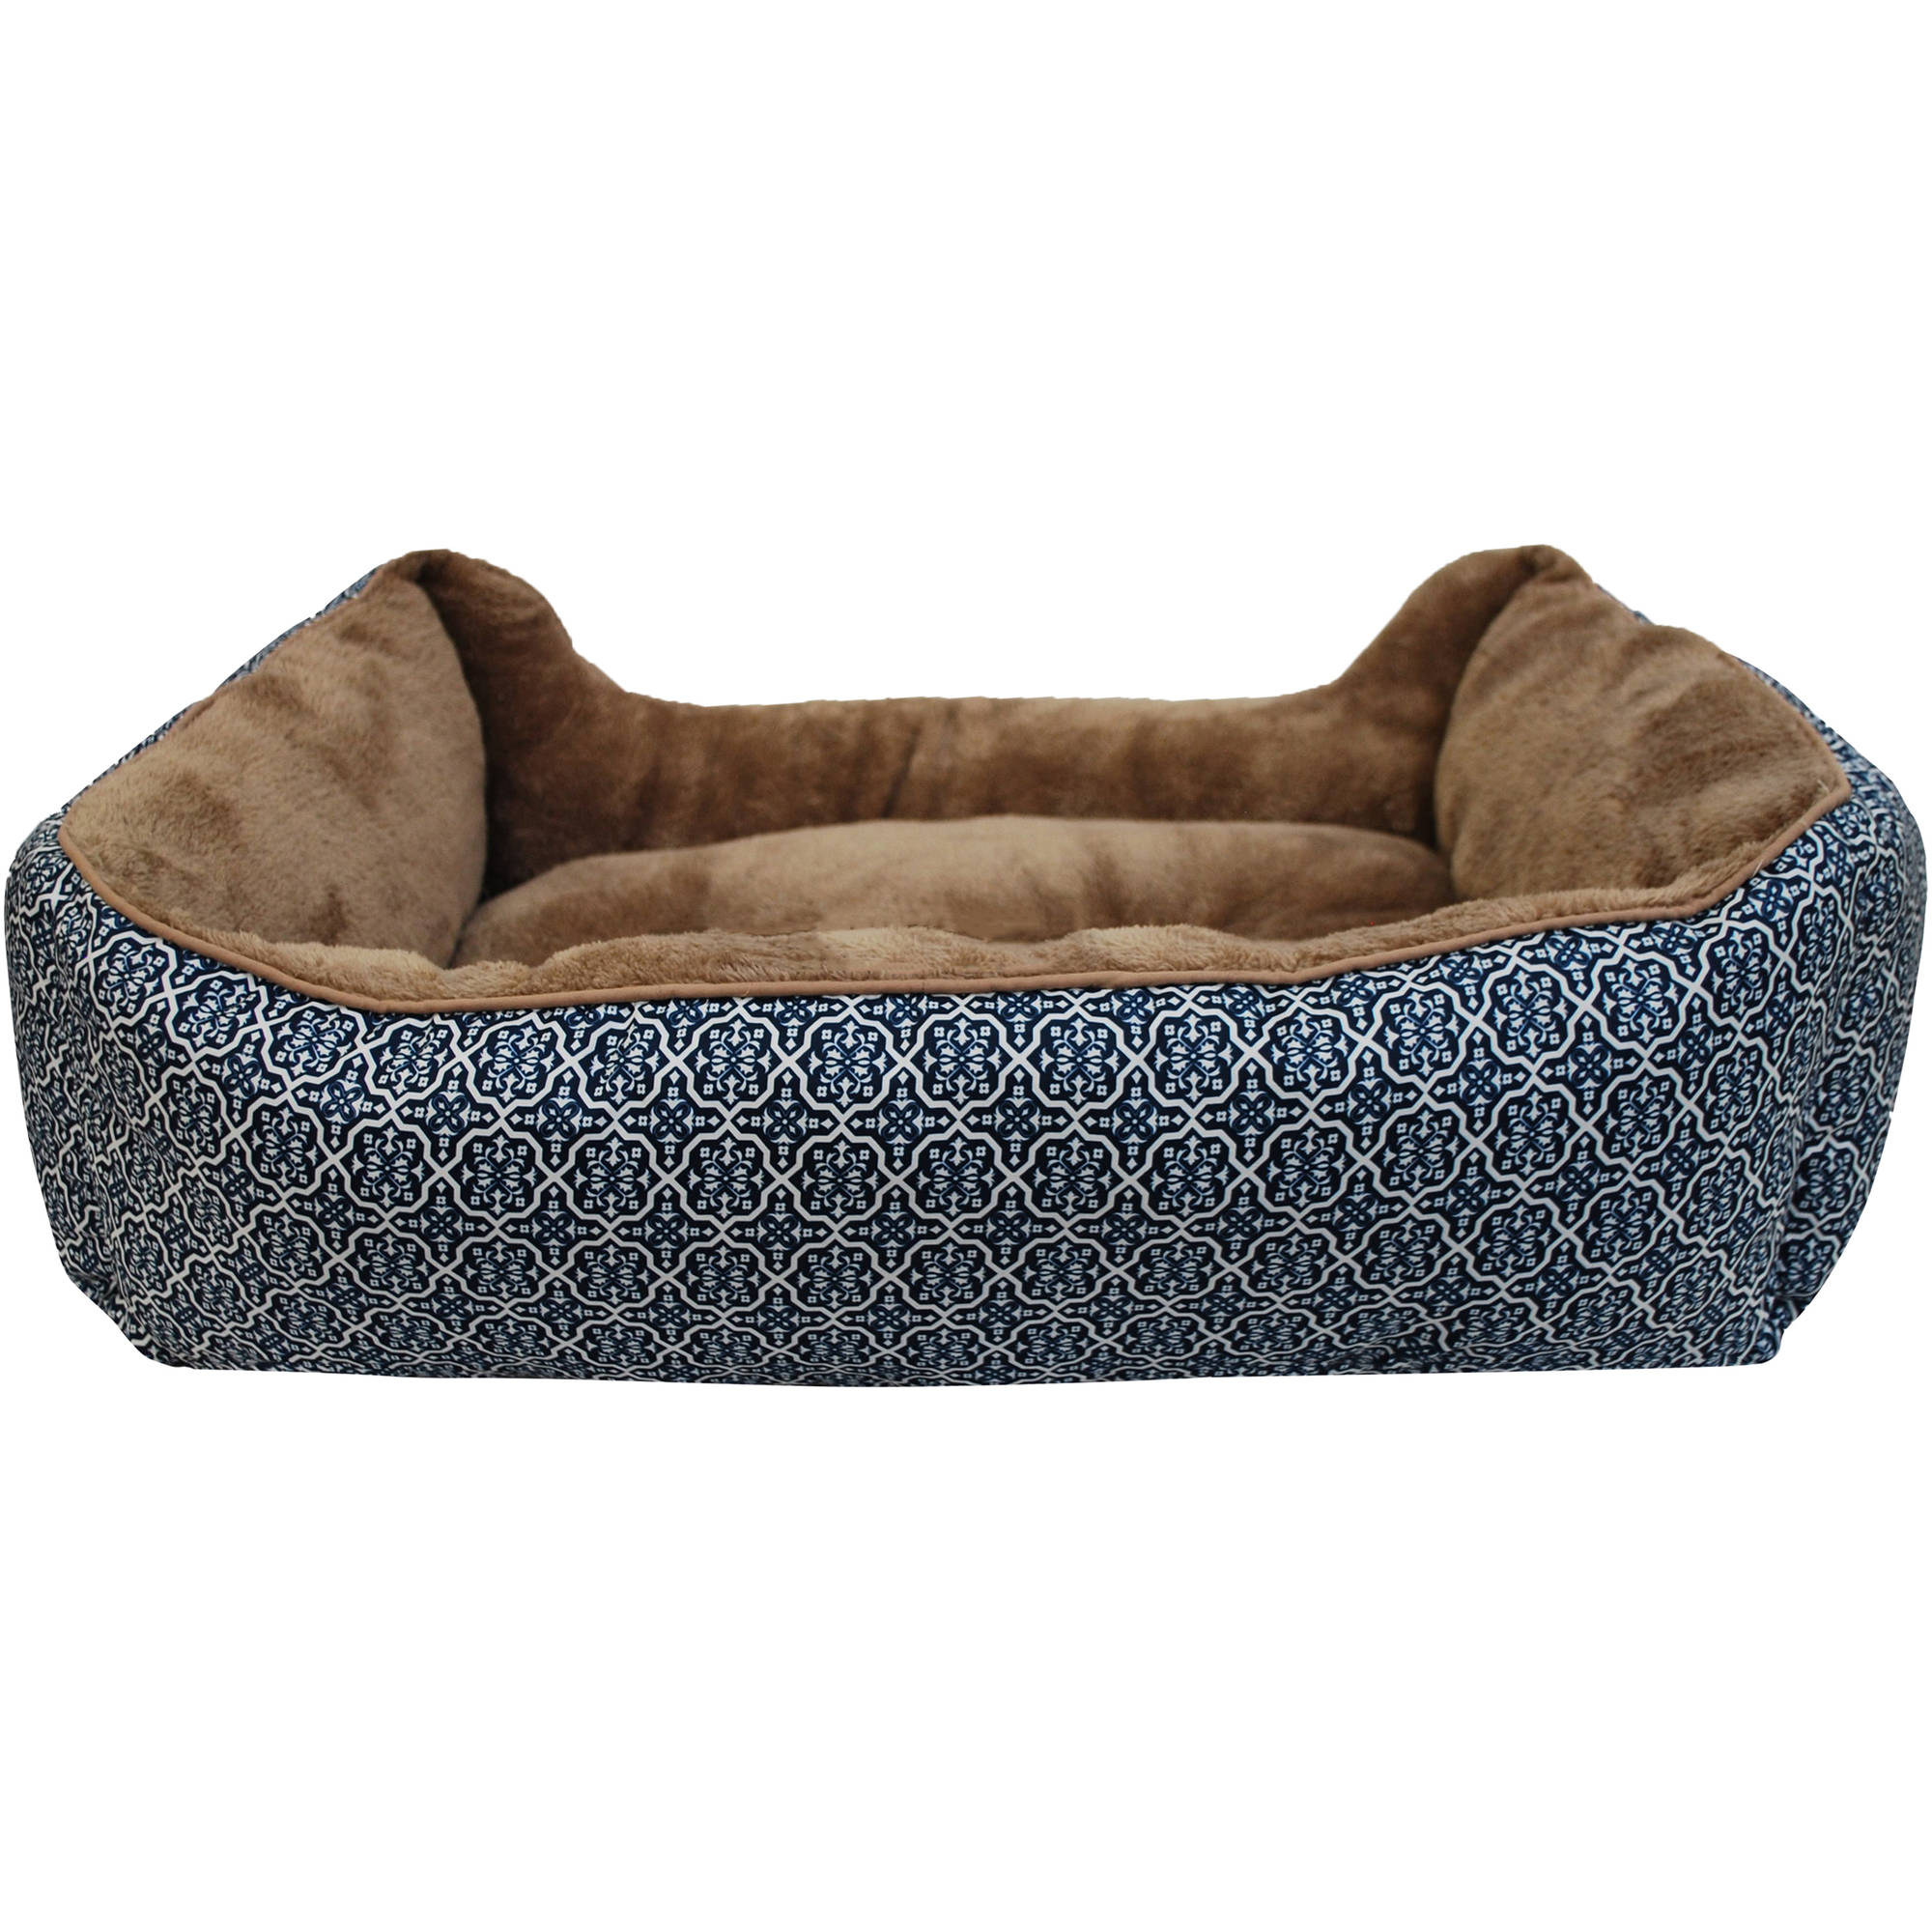 chew proof charcoal dp soft amazon dog bed black pet x com velour brindle supplies medium